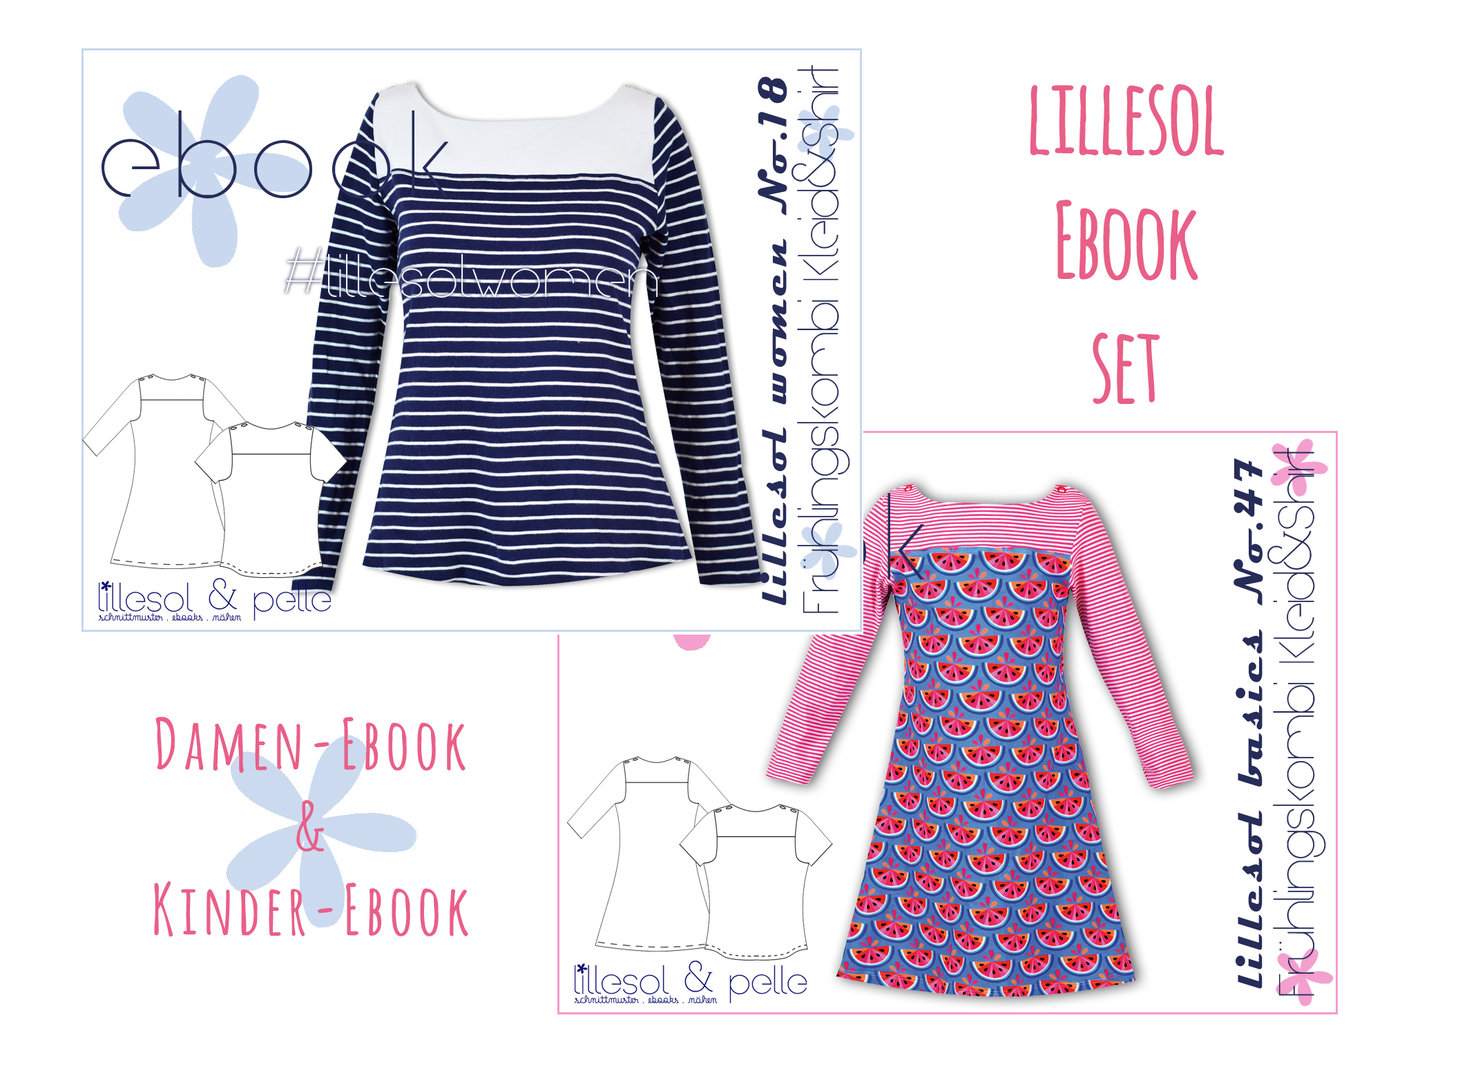 lillesol ebook set basics No.47 und women No.18 *mit Video-Nähanleitung*